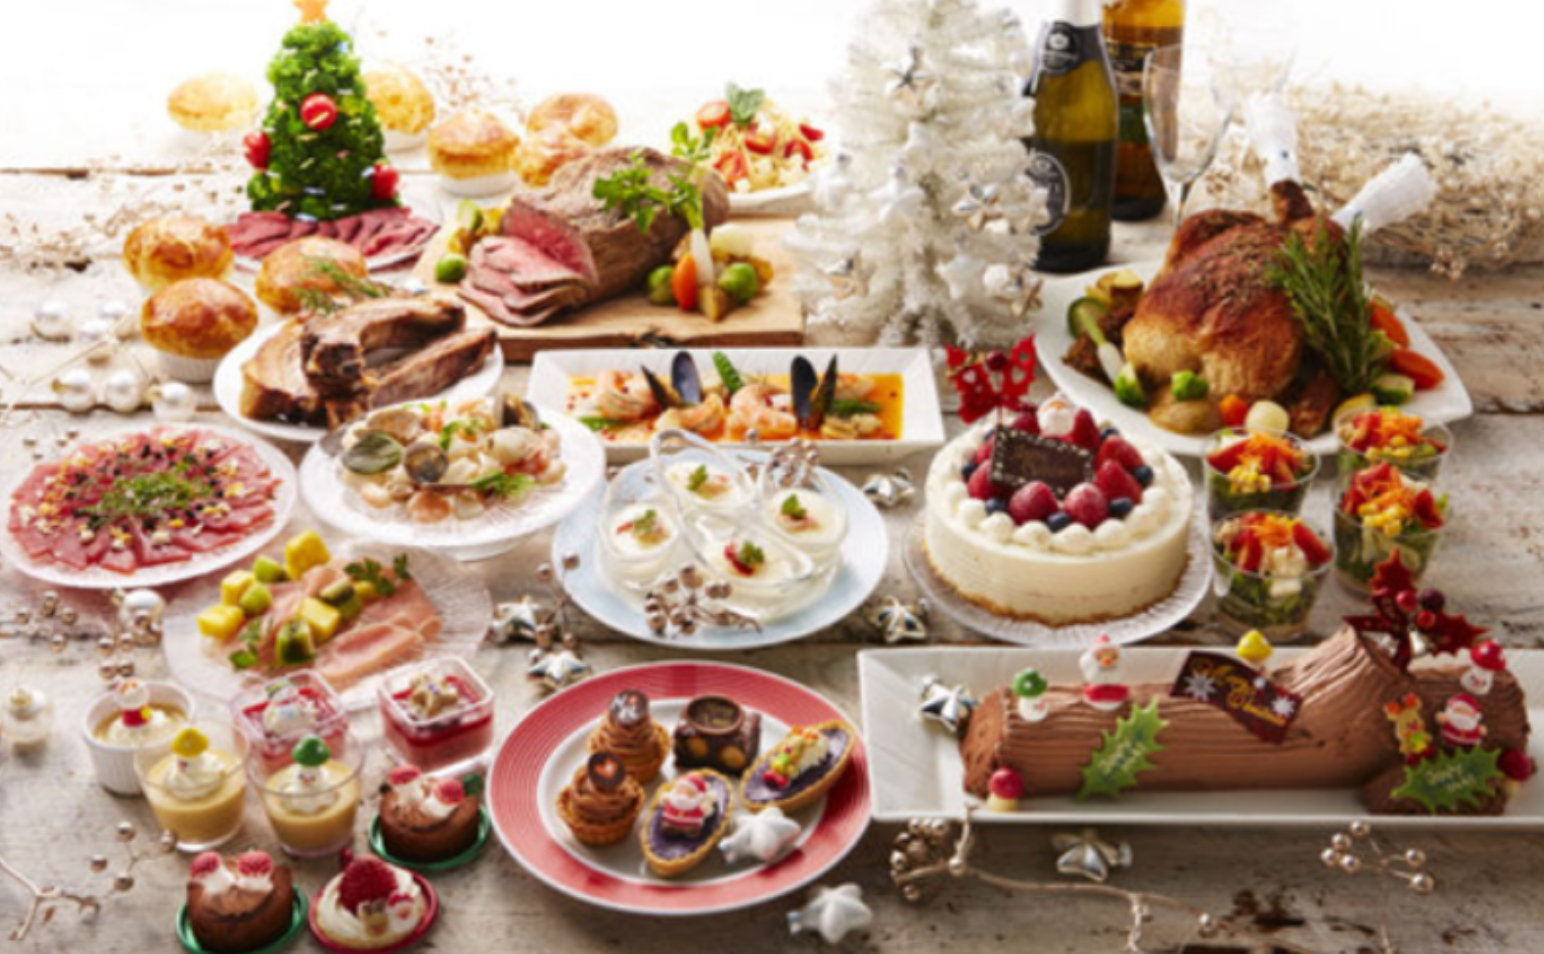 A Mini-Tour of Christmas/Holiday Feasts and Traditions 3